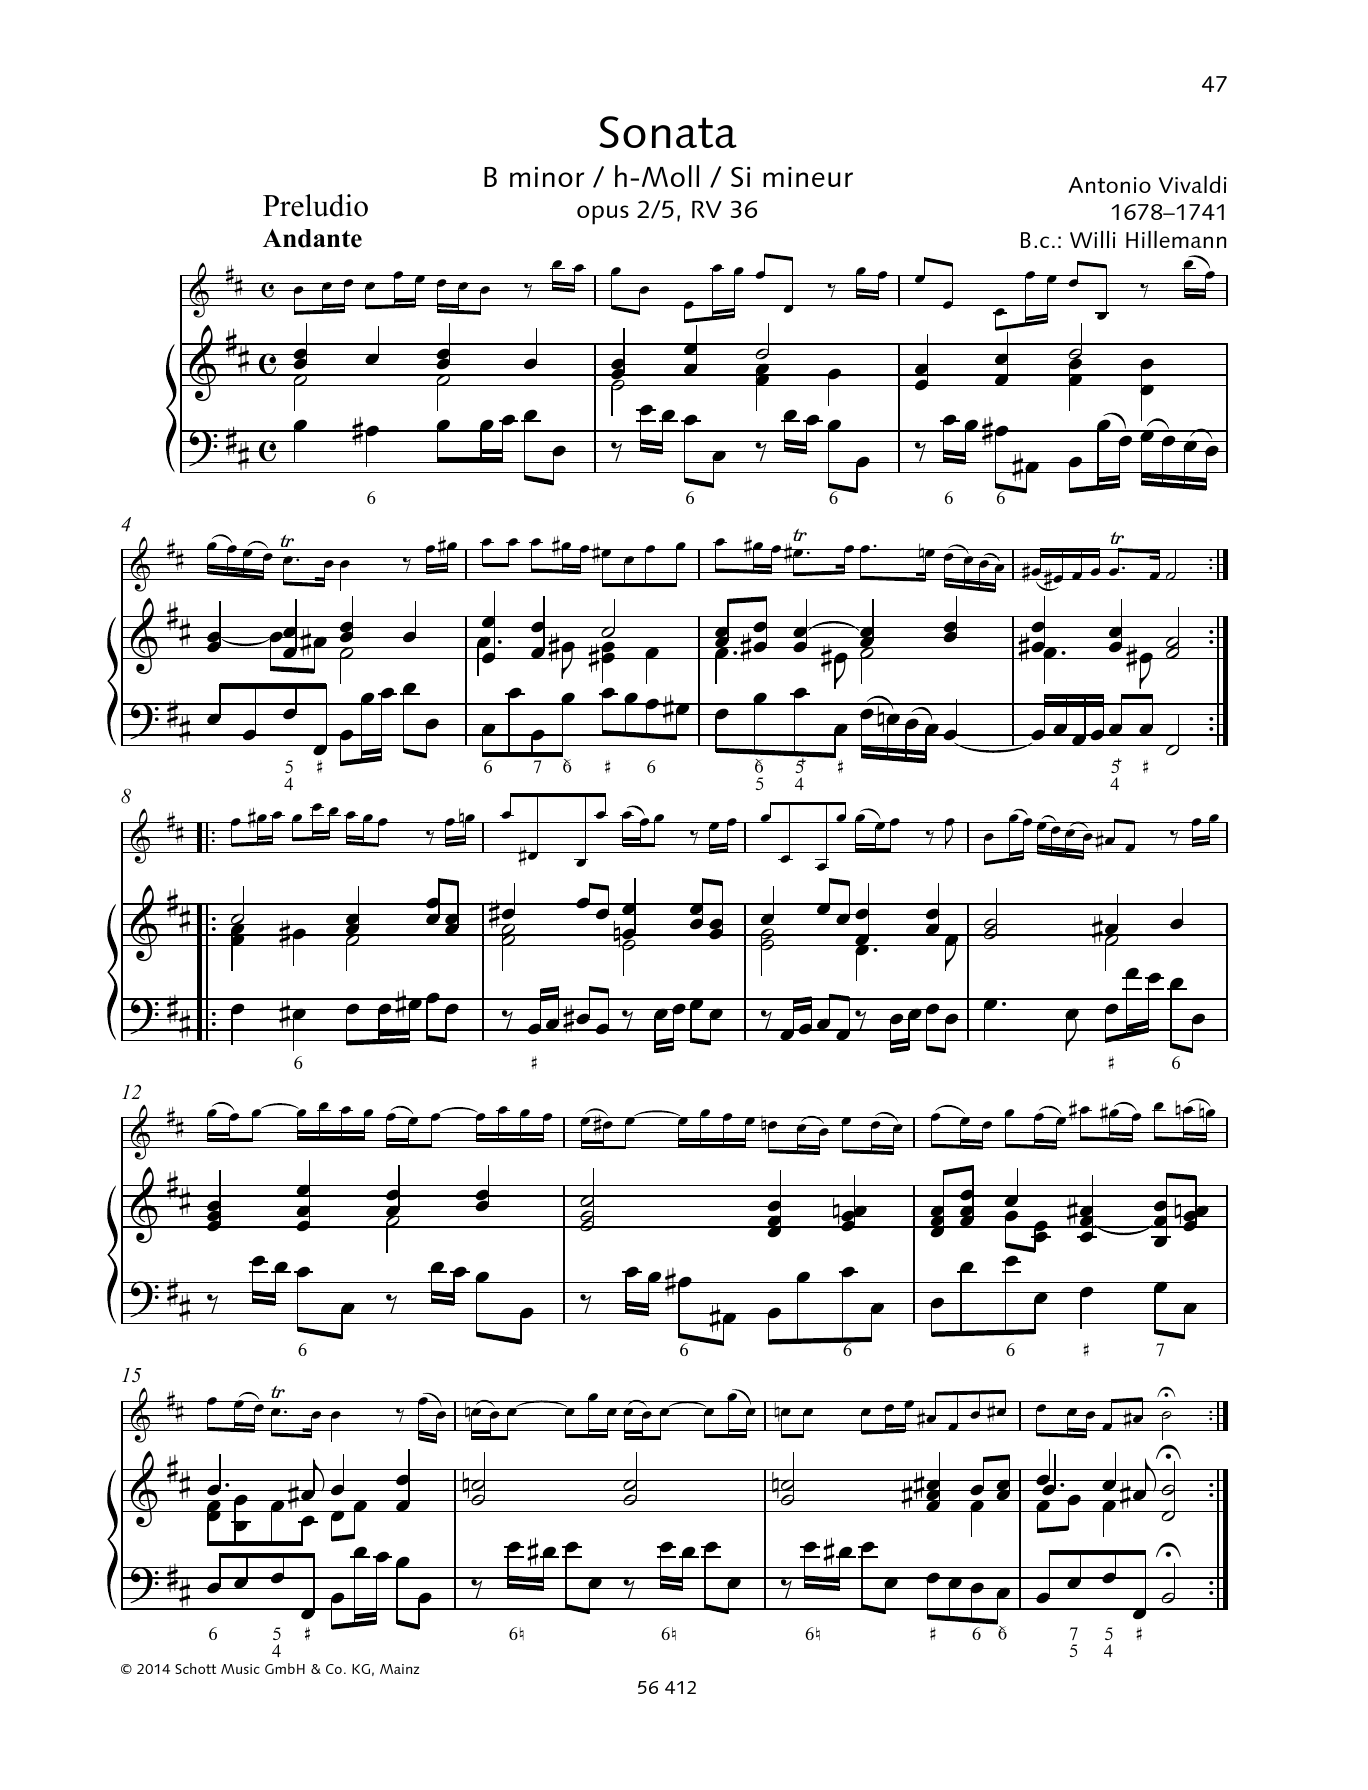 Sonata B Minor Sheet Music